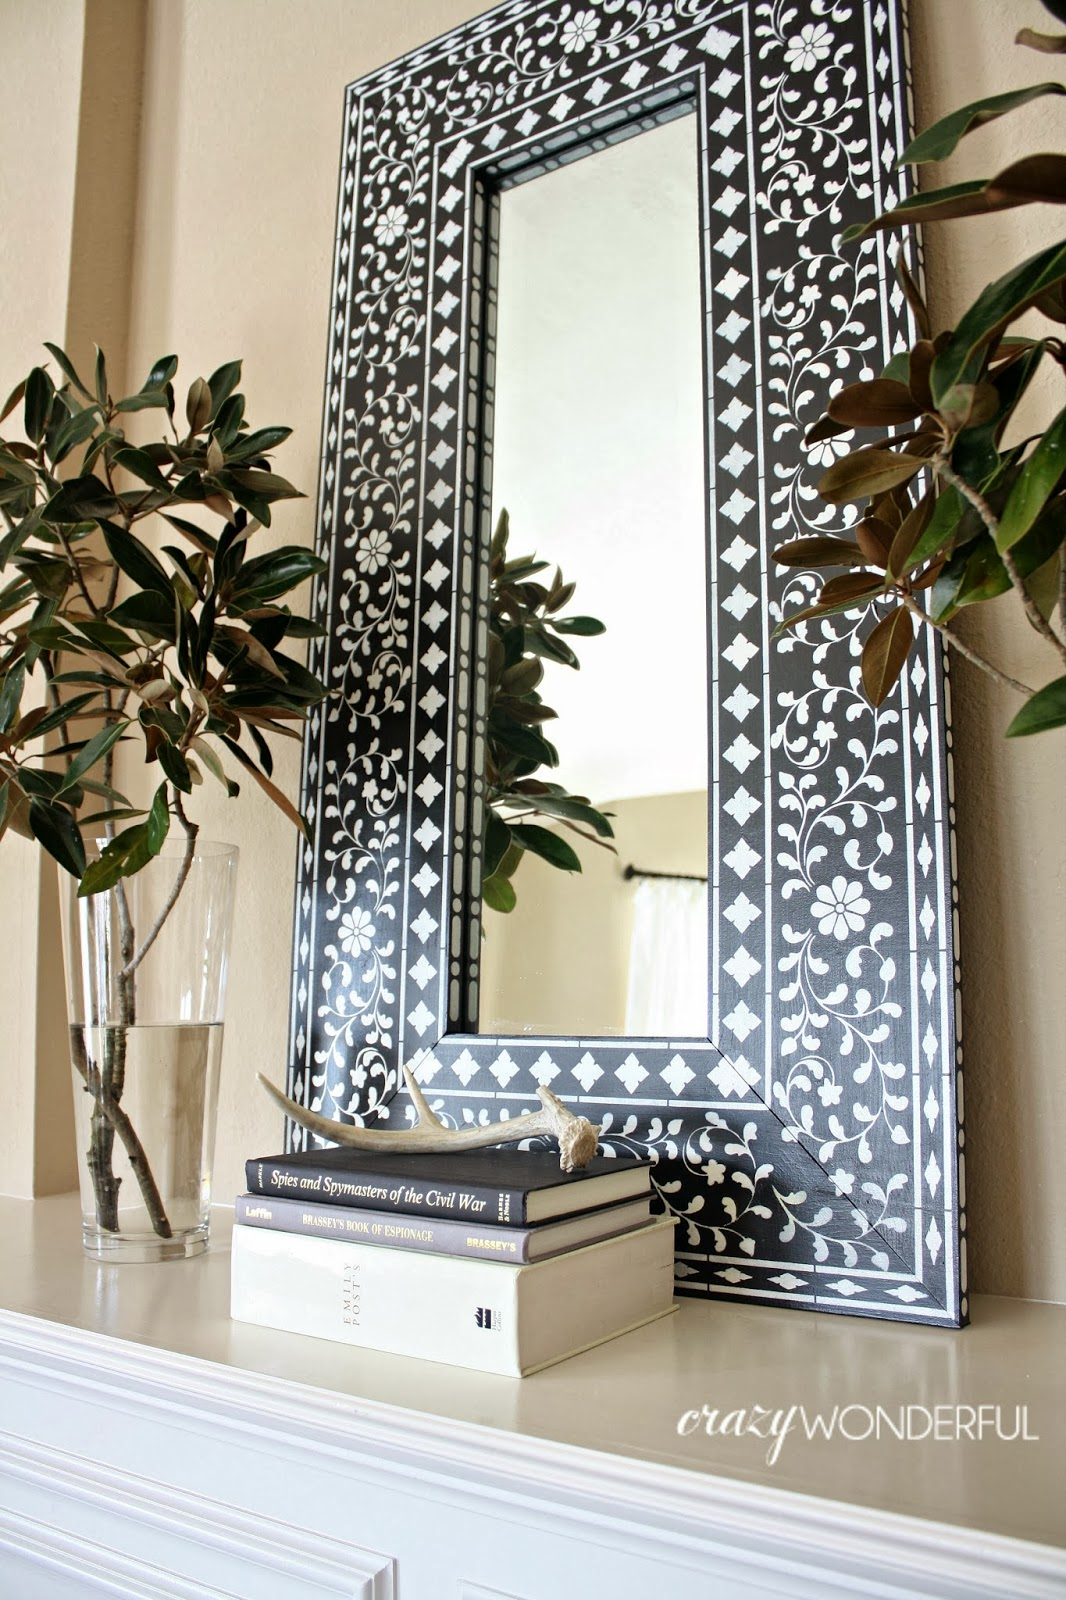 Wall Mirrors Decor 28+ [ mirror decorations ] | home decorating with wall mirrors for